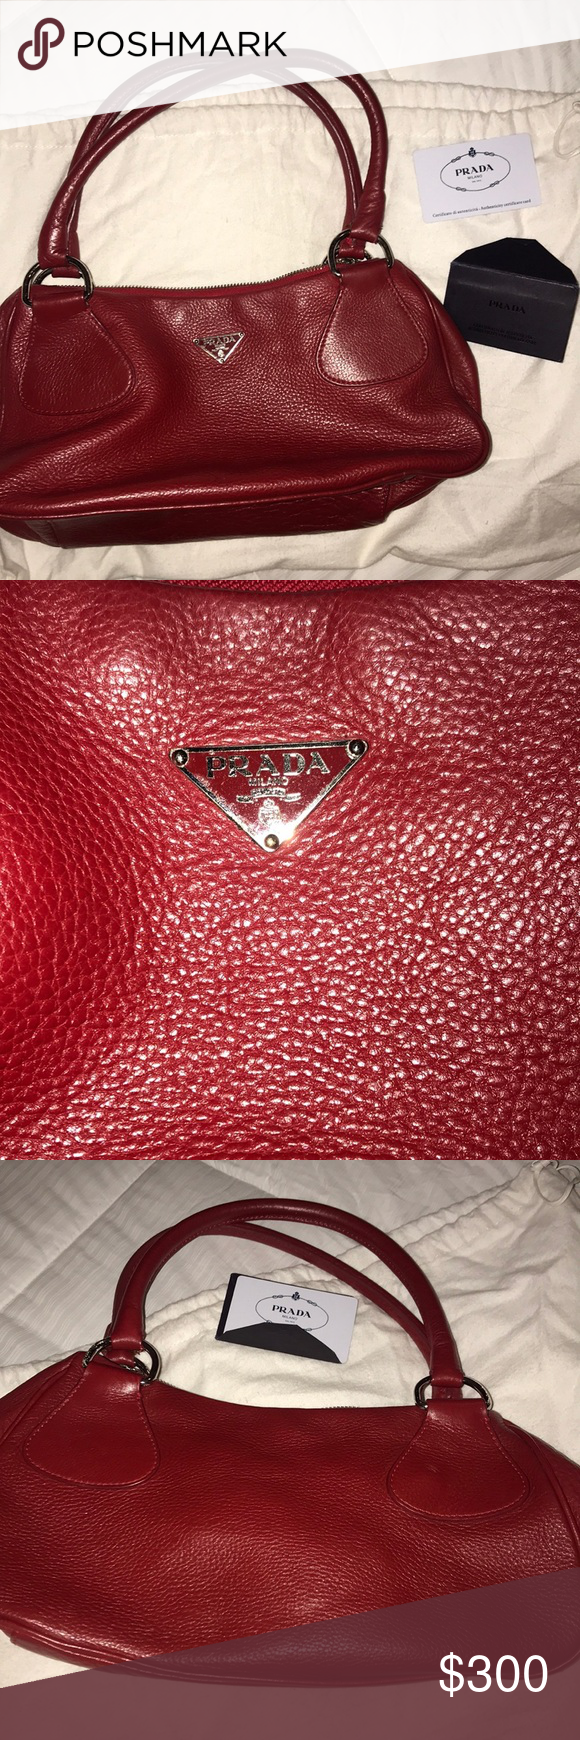 Red Prada leather handbag Red BR0830 Prada leather handbag Great condition, inside is completely clean, leather is not damaged in anyway. Comes with duffel bag and authenticity cards. Prada Bags Shoulder Bags